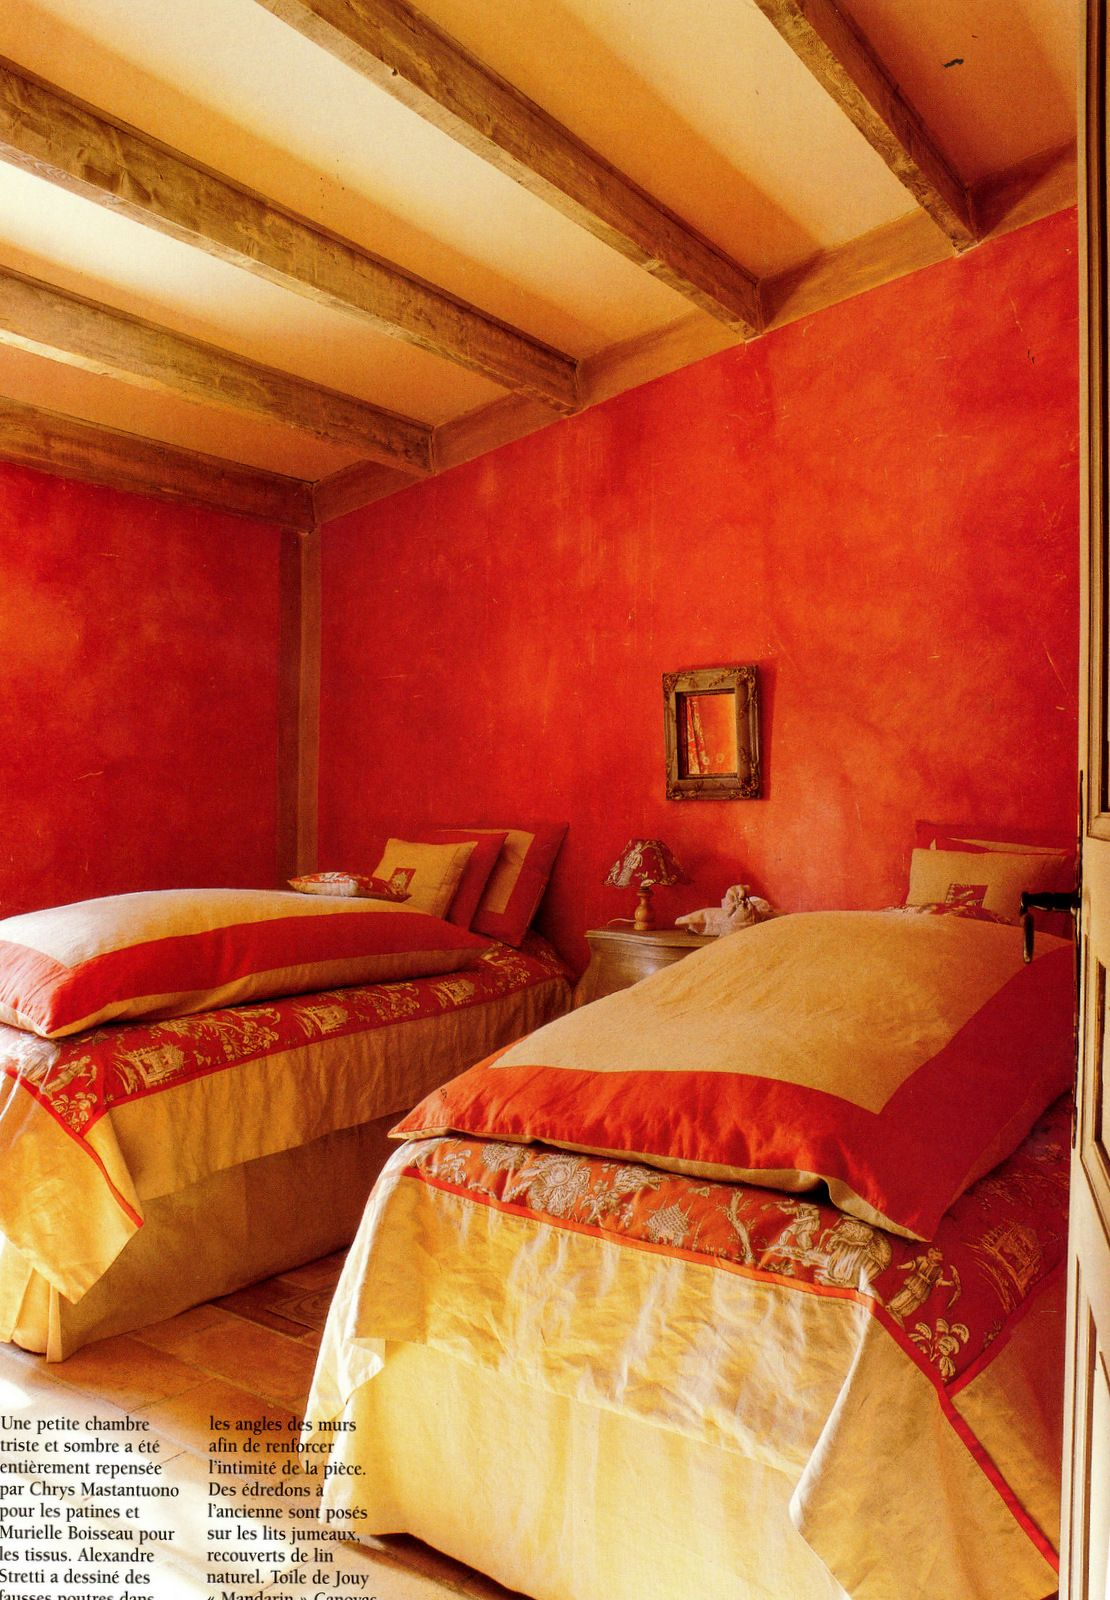 Rustic Style Bedroom In Provence France With Distressed